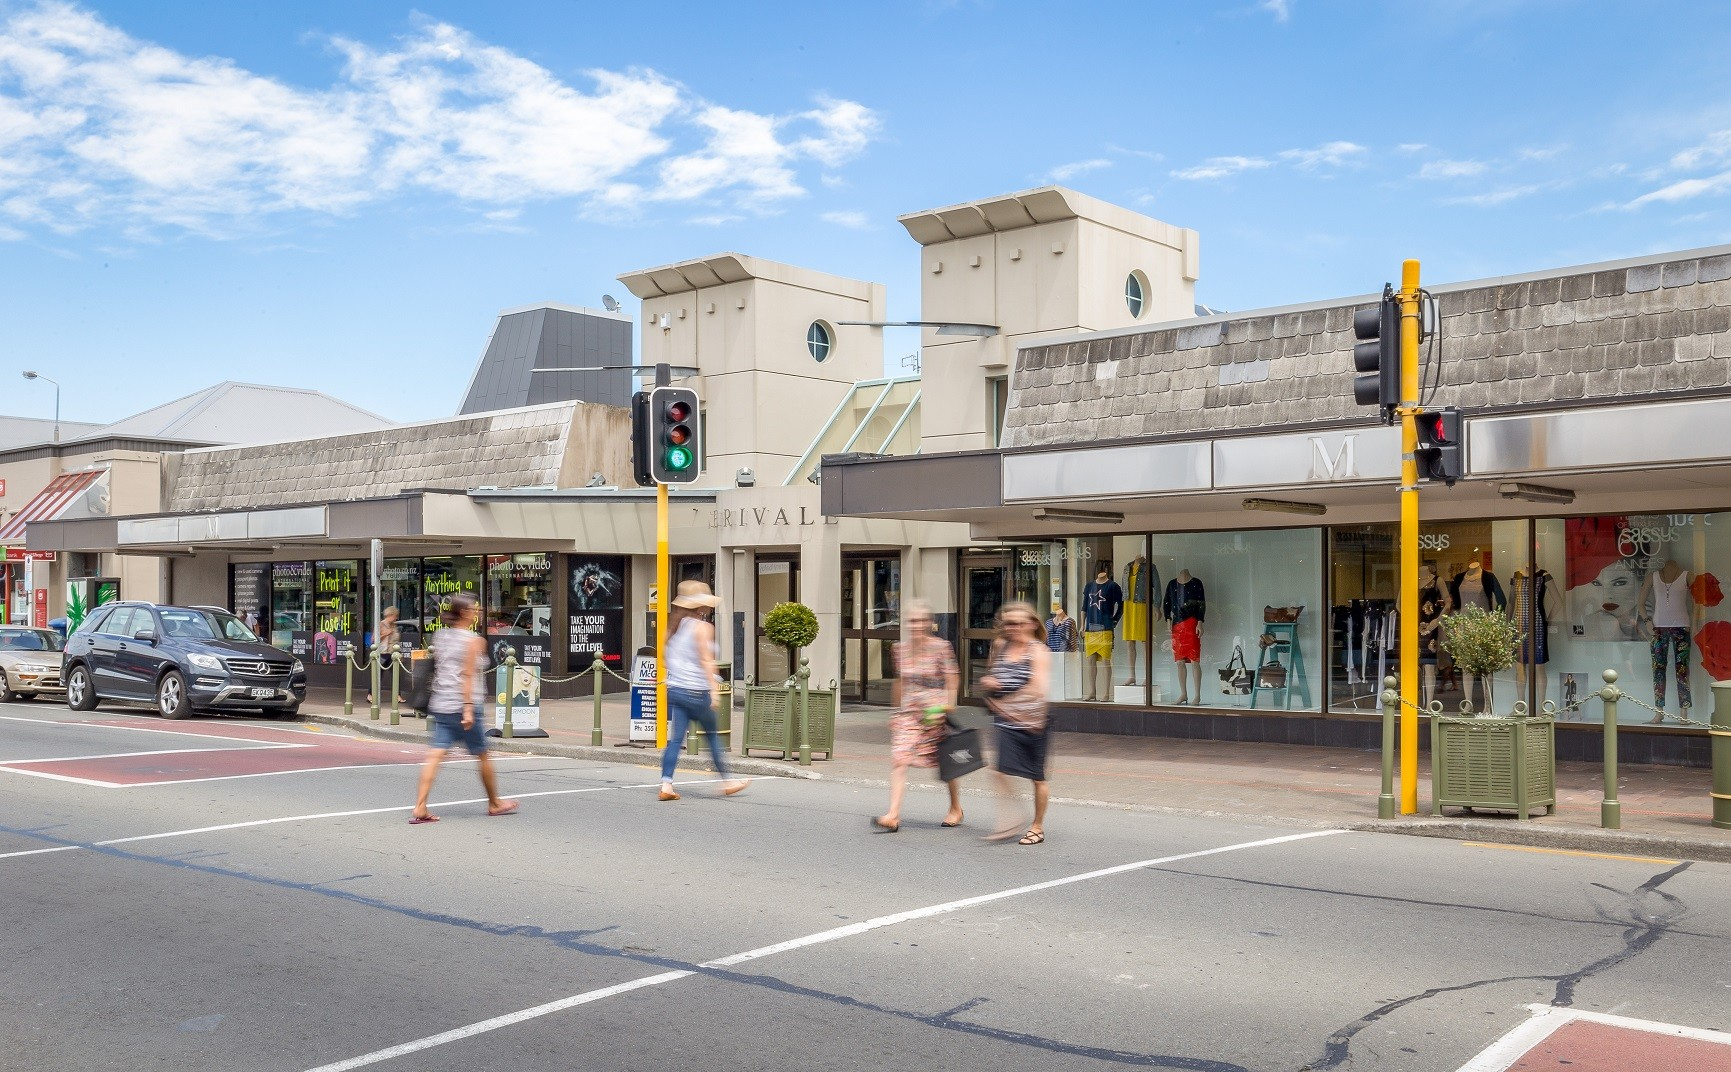 Mall Retail  for Lease Merivale Christchurch